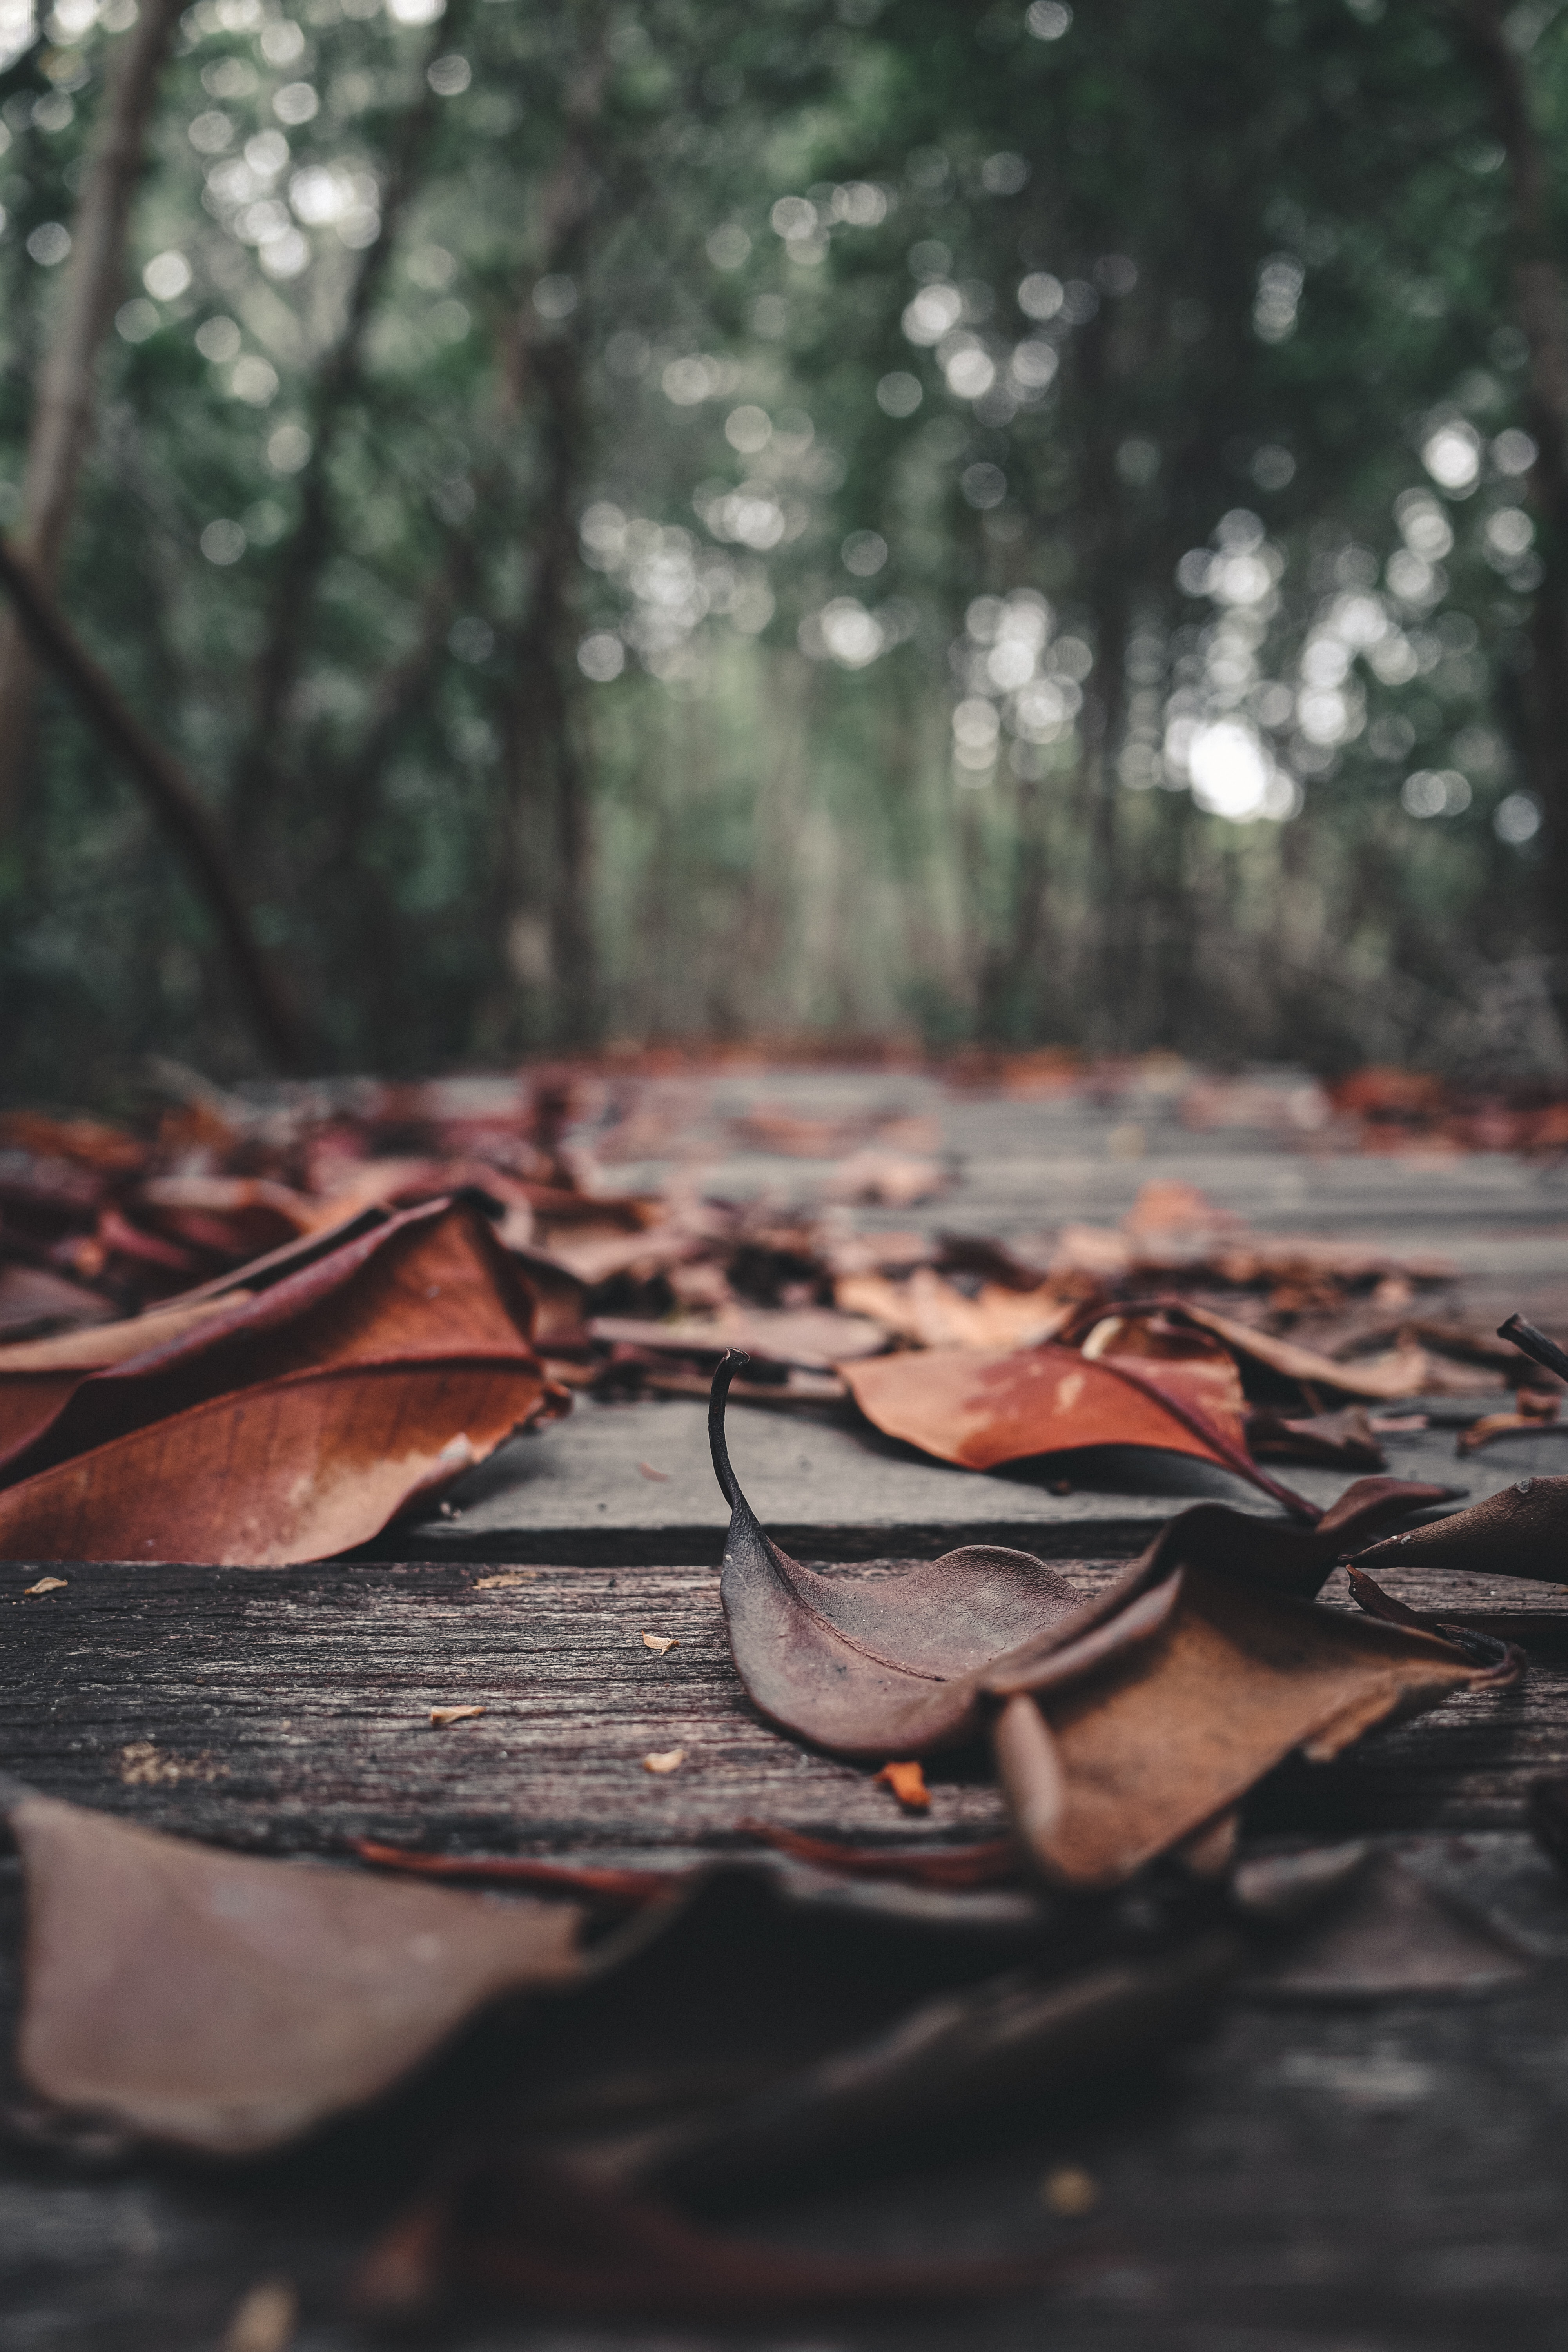 112961 download wallpaper Nature, Foliage, Leaves, Autumn, Planks, Board, Wood, Wooden screensavers and pictures for free